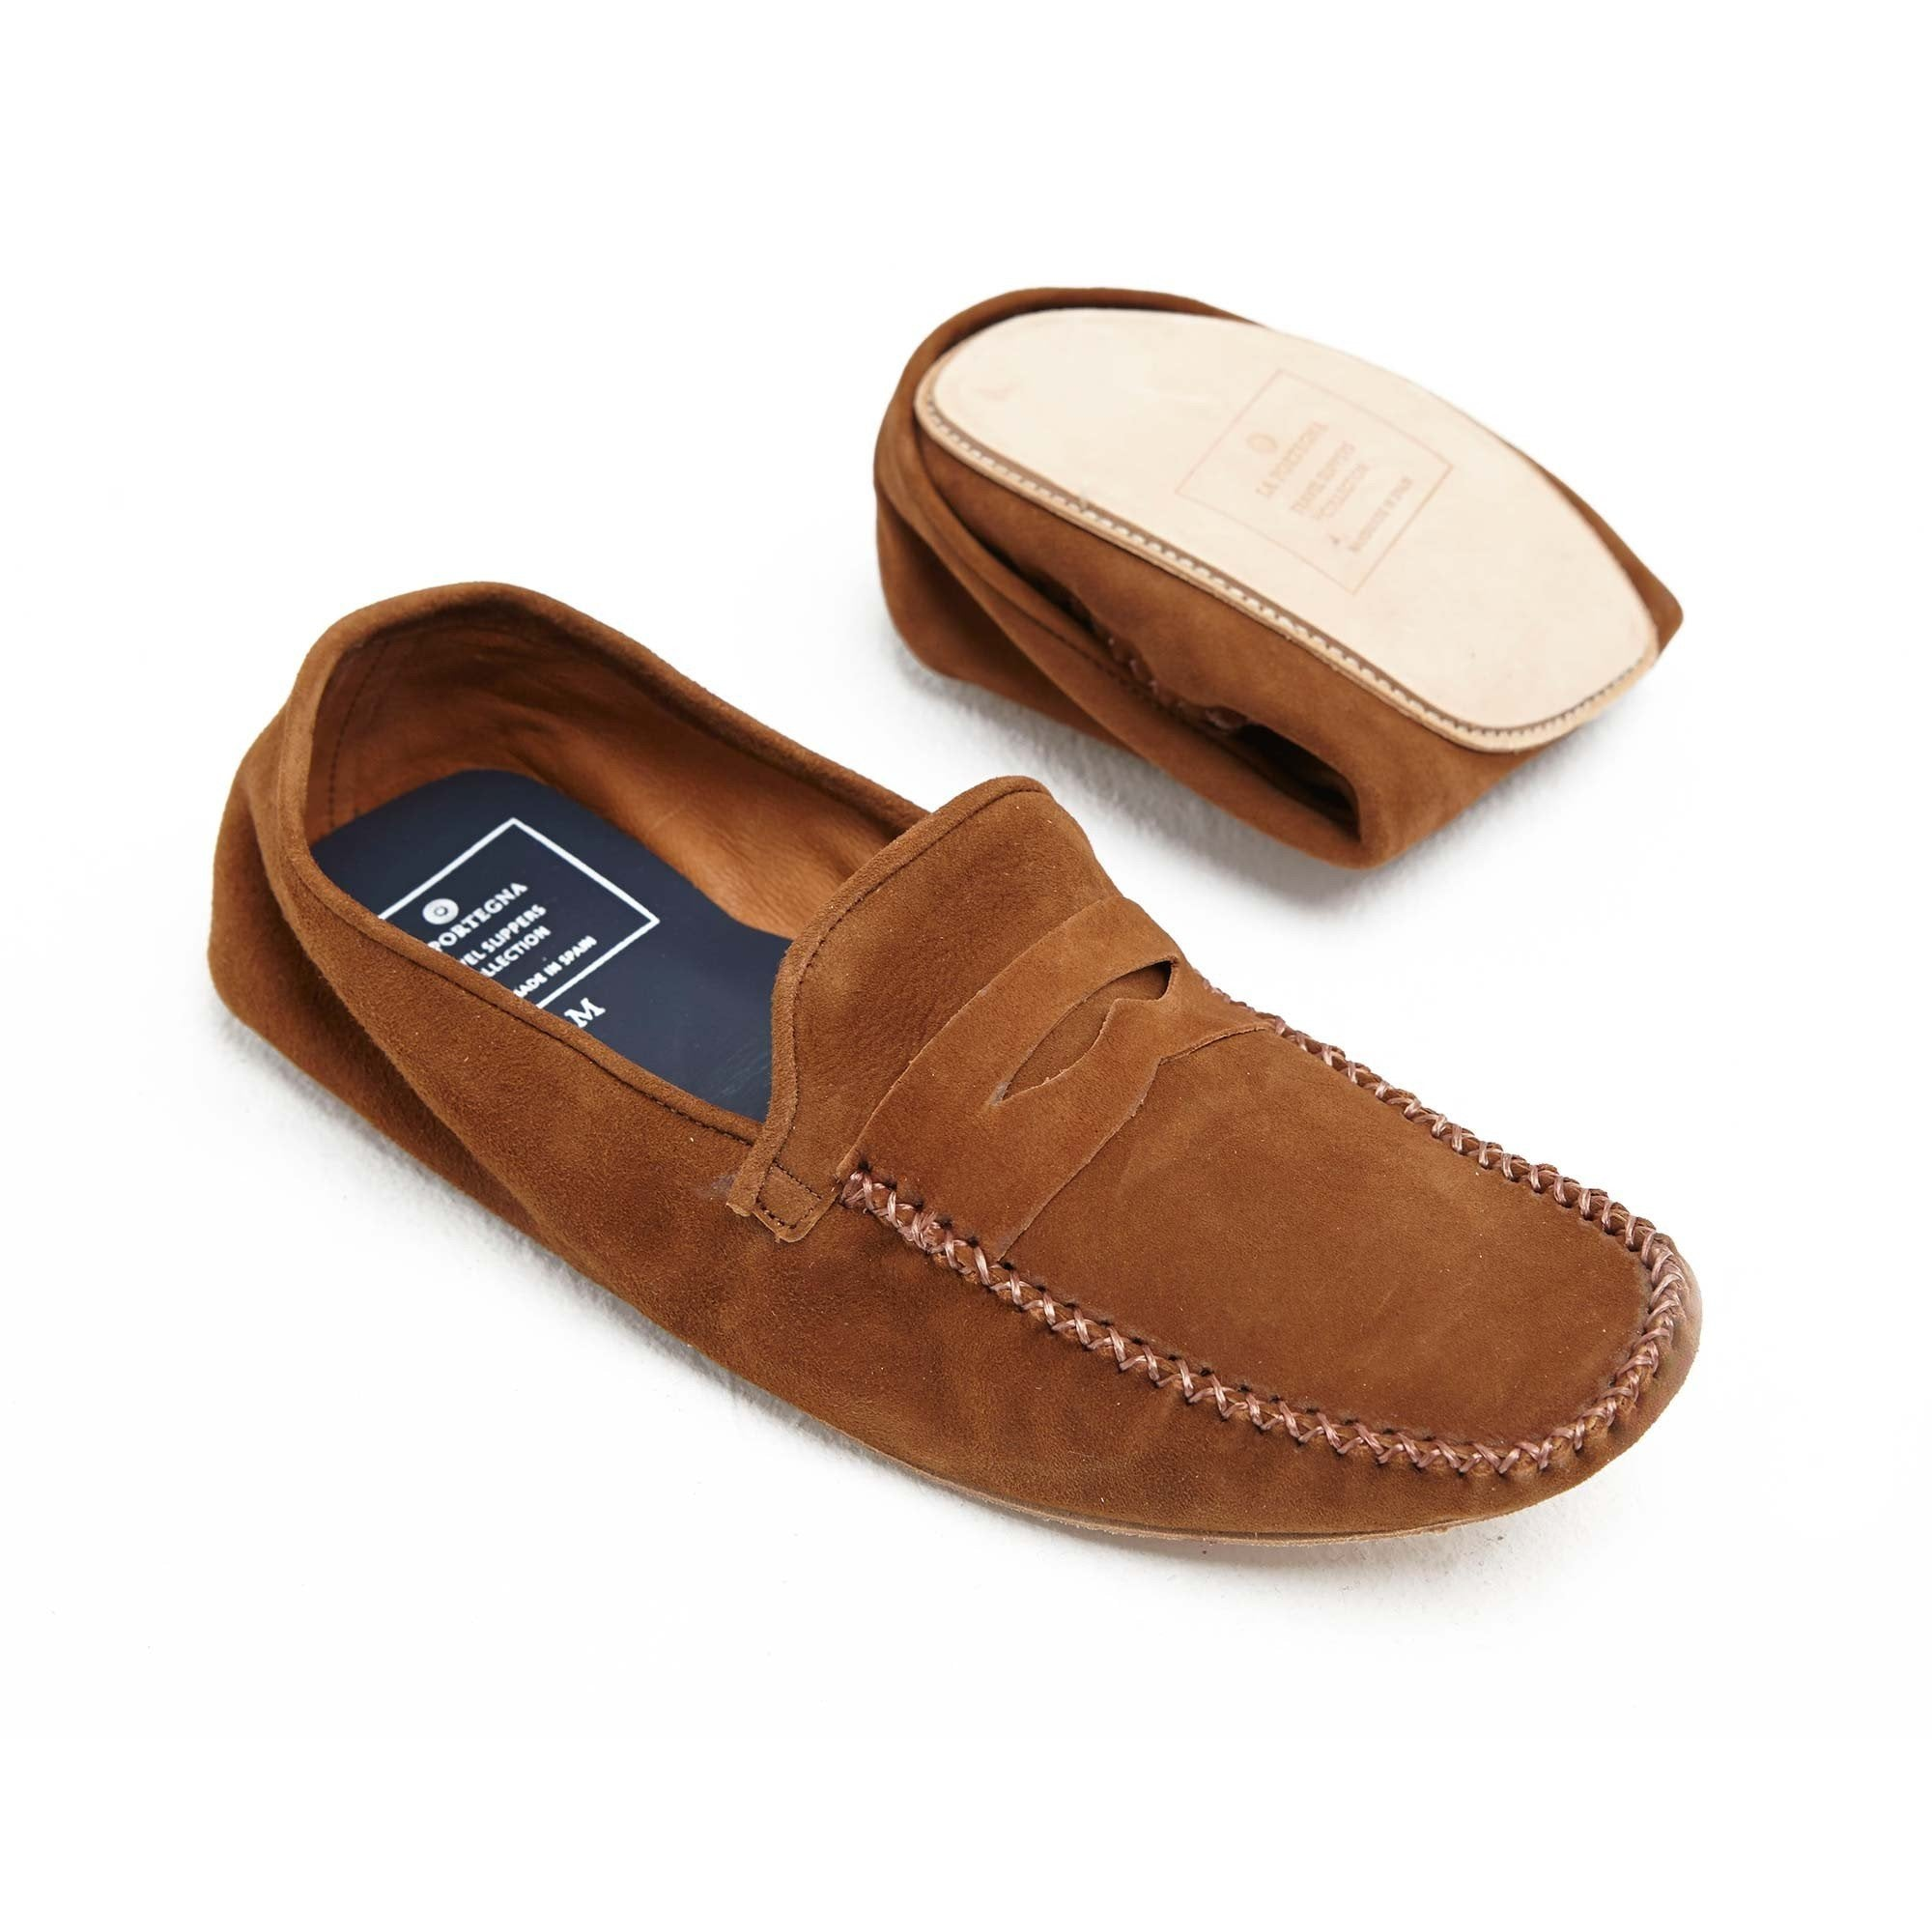 factory outlets unique design sale uk Rodrigo Suede Tan Slippers | Leather Slippers for Men | Moccasins ...